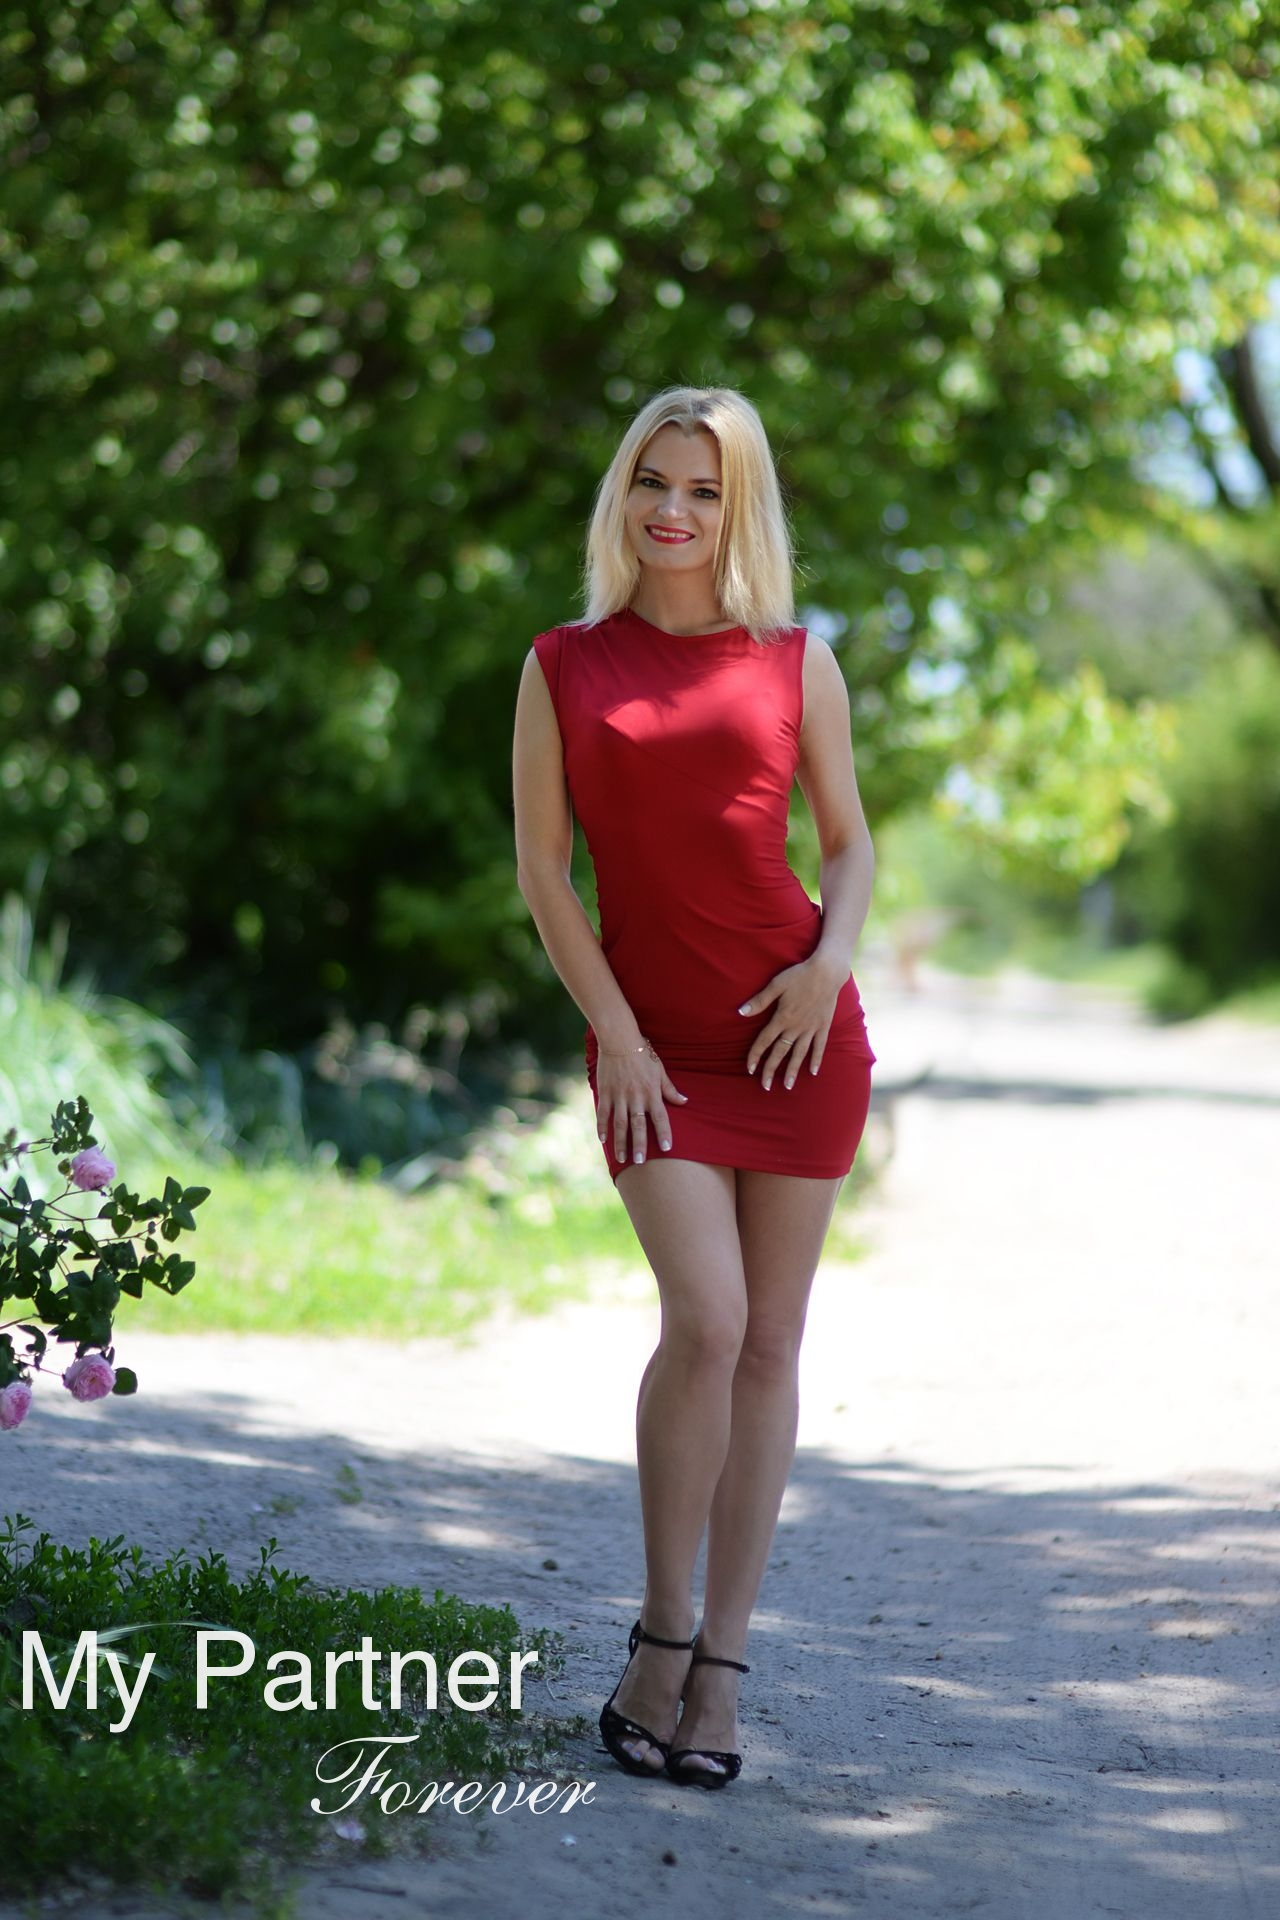 Datingsite to Meet Beautiful Ukrainian Girl Marina from Kharkov, Ukraine